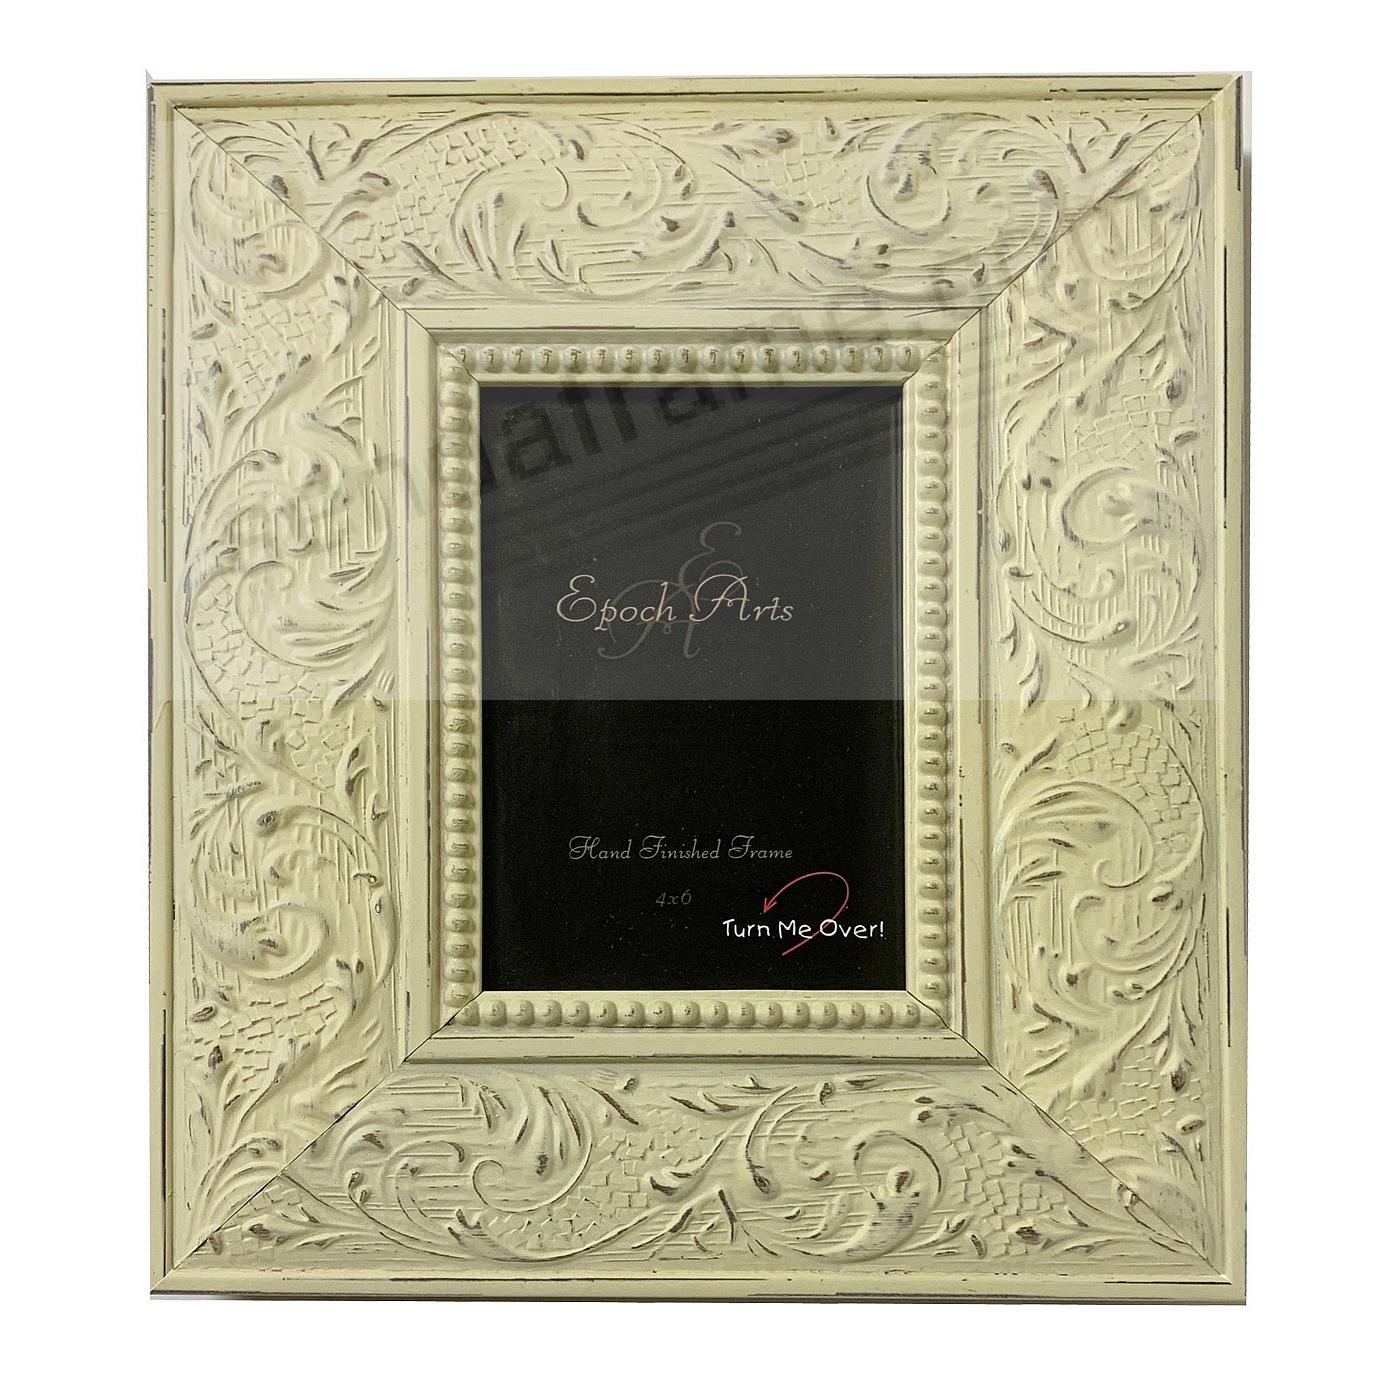 PASTORAL style in antiqued-white tones by Epoch Arts®